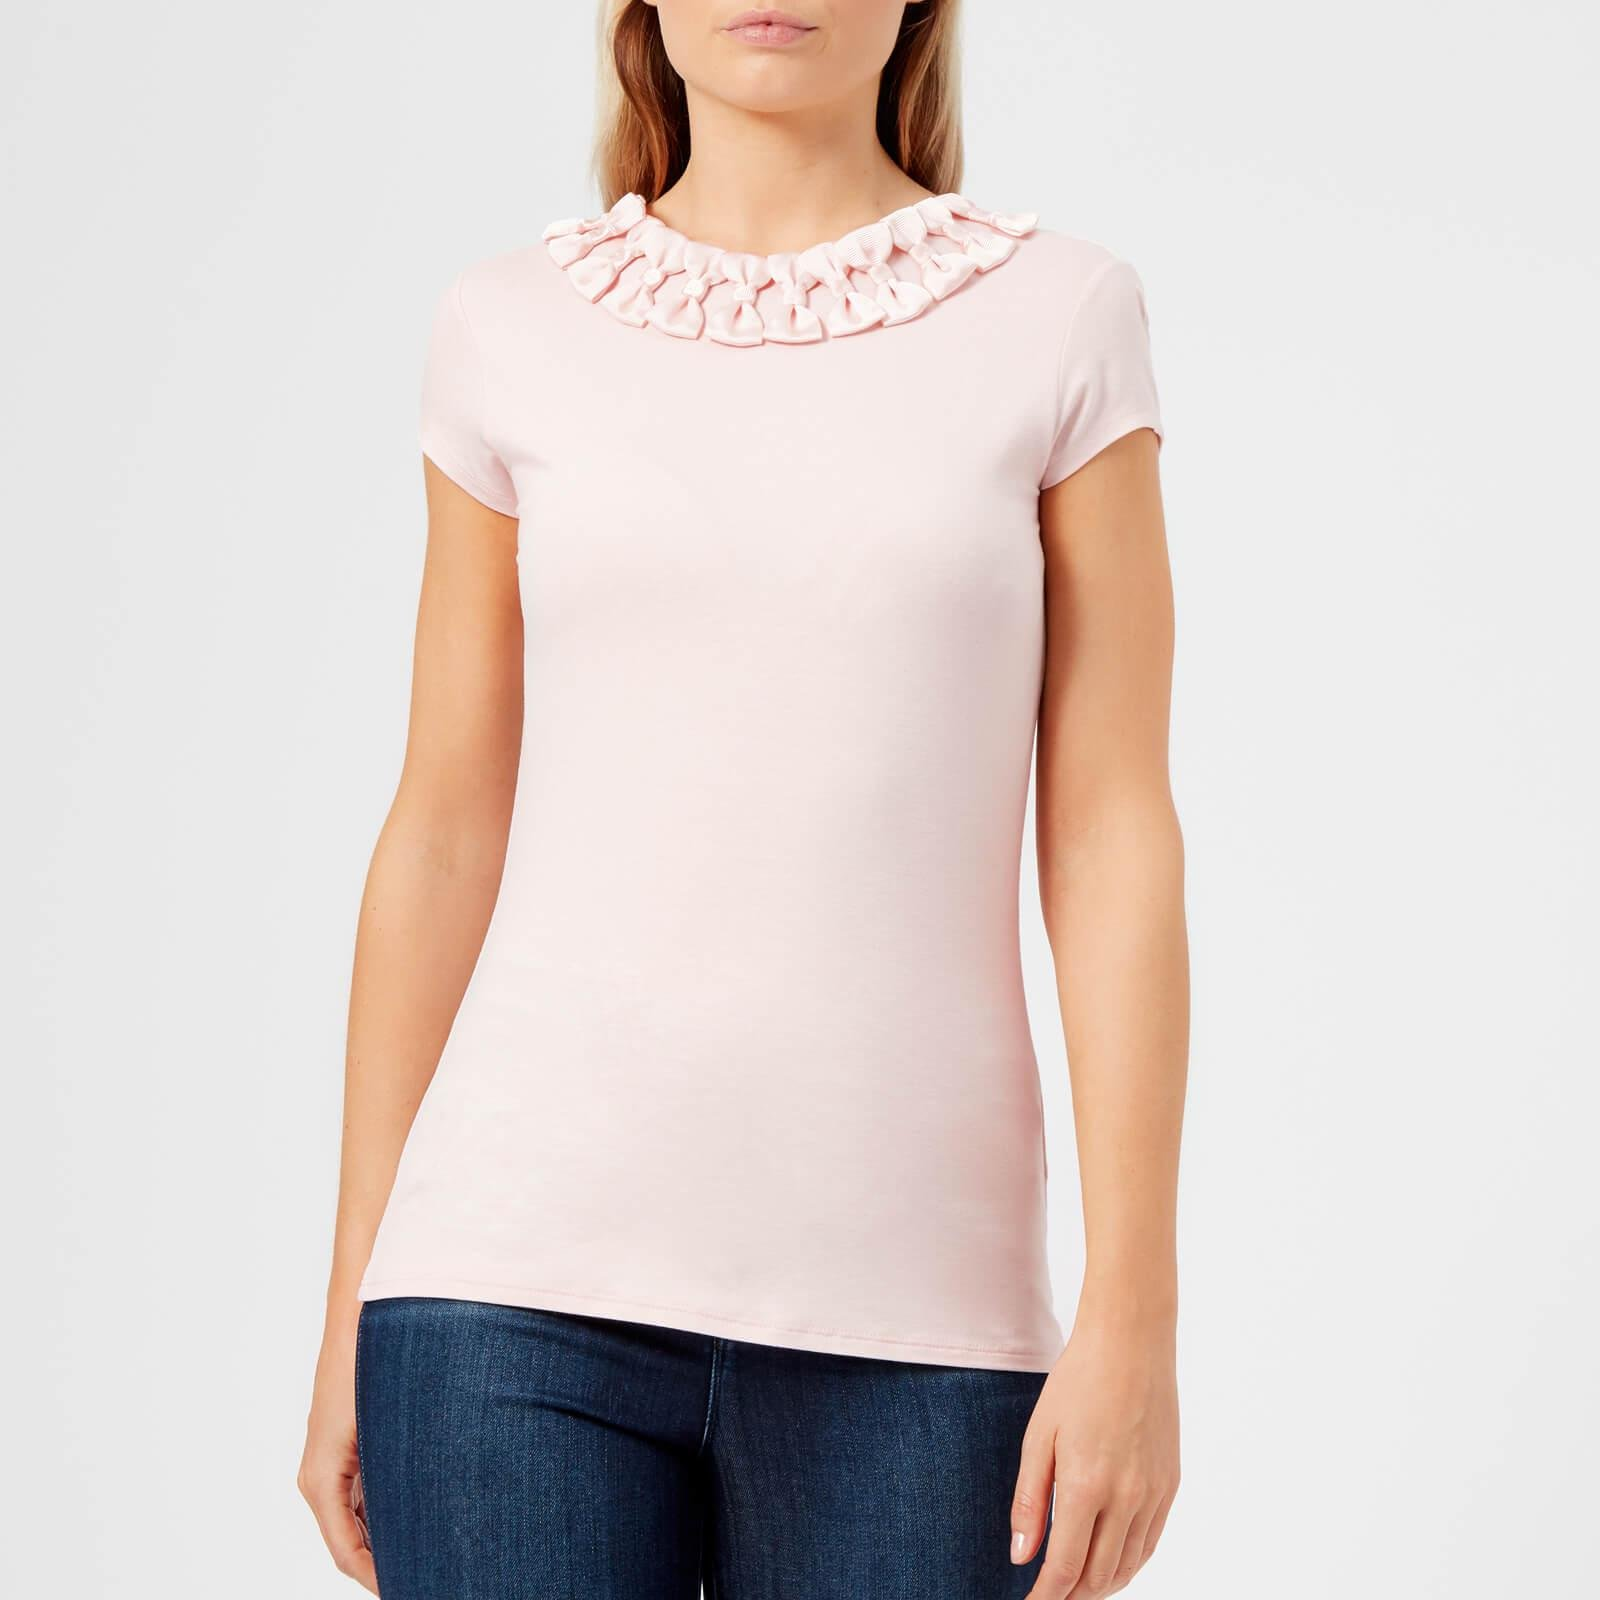 369b04eedf18e Lyst - Ted Baker Charre Bow Neck Detail Fitted T-shirt in Pink